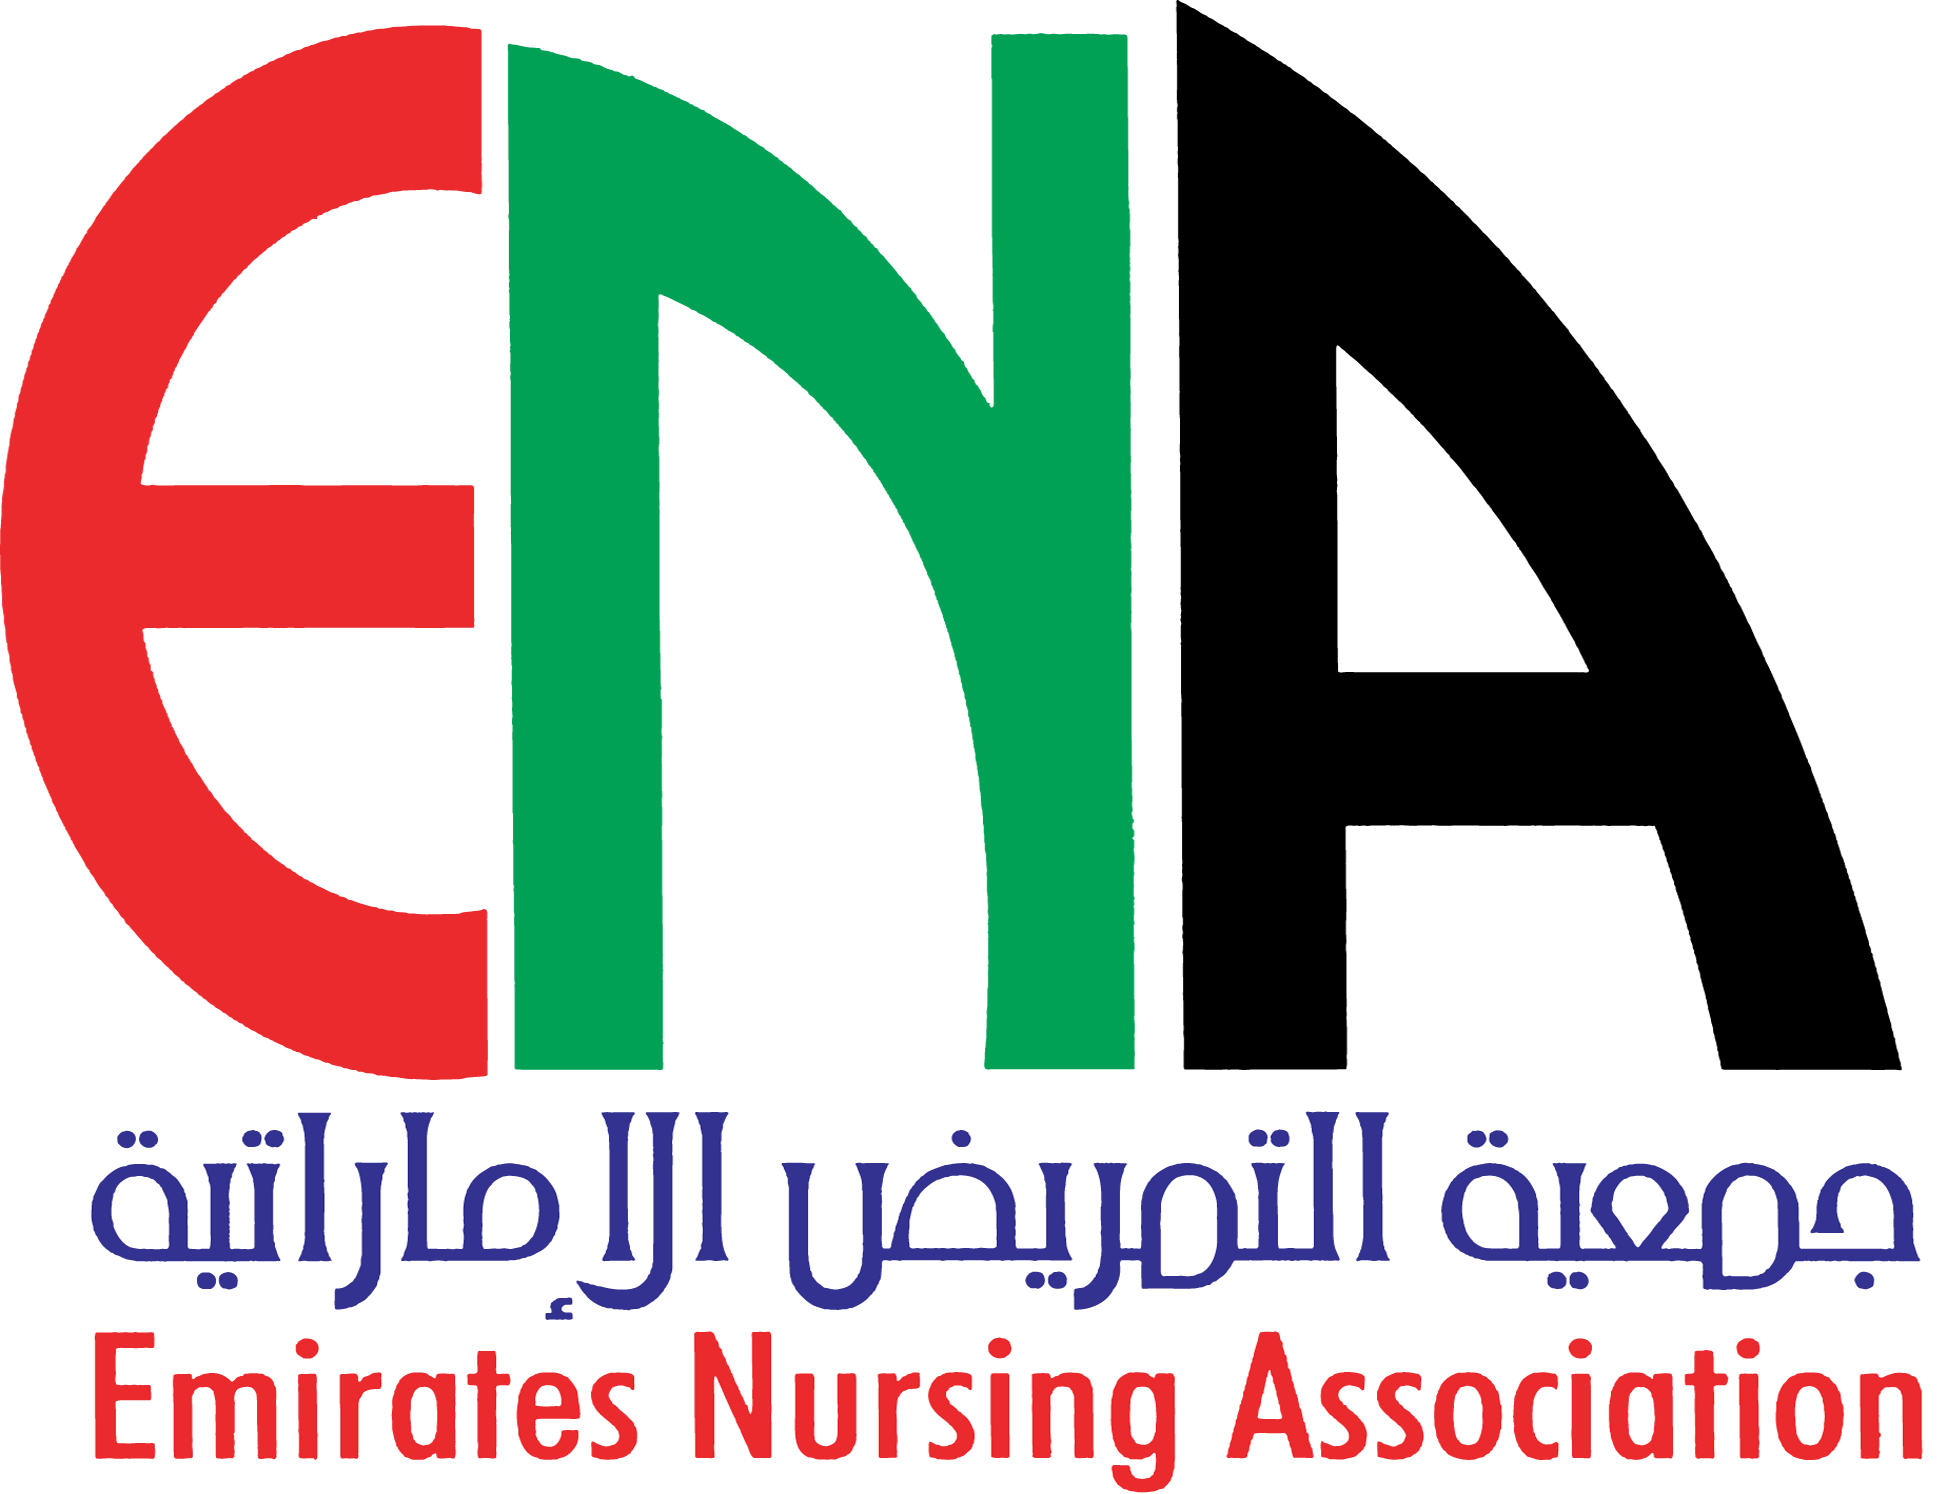 Nursing Conference in Dubai from 24-26 October 2019